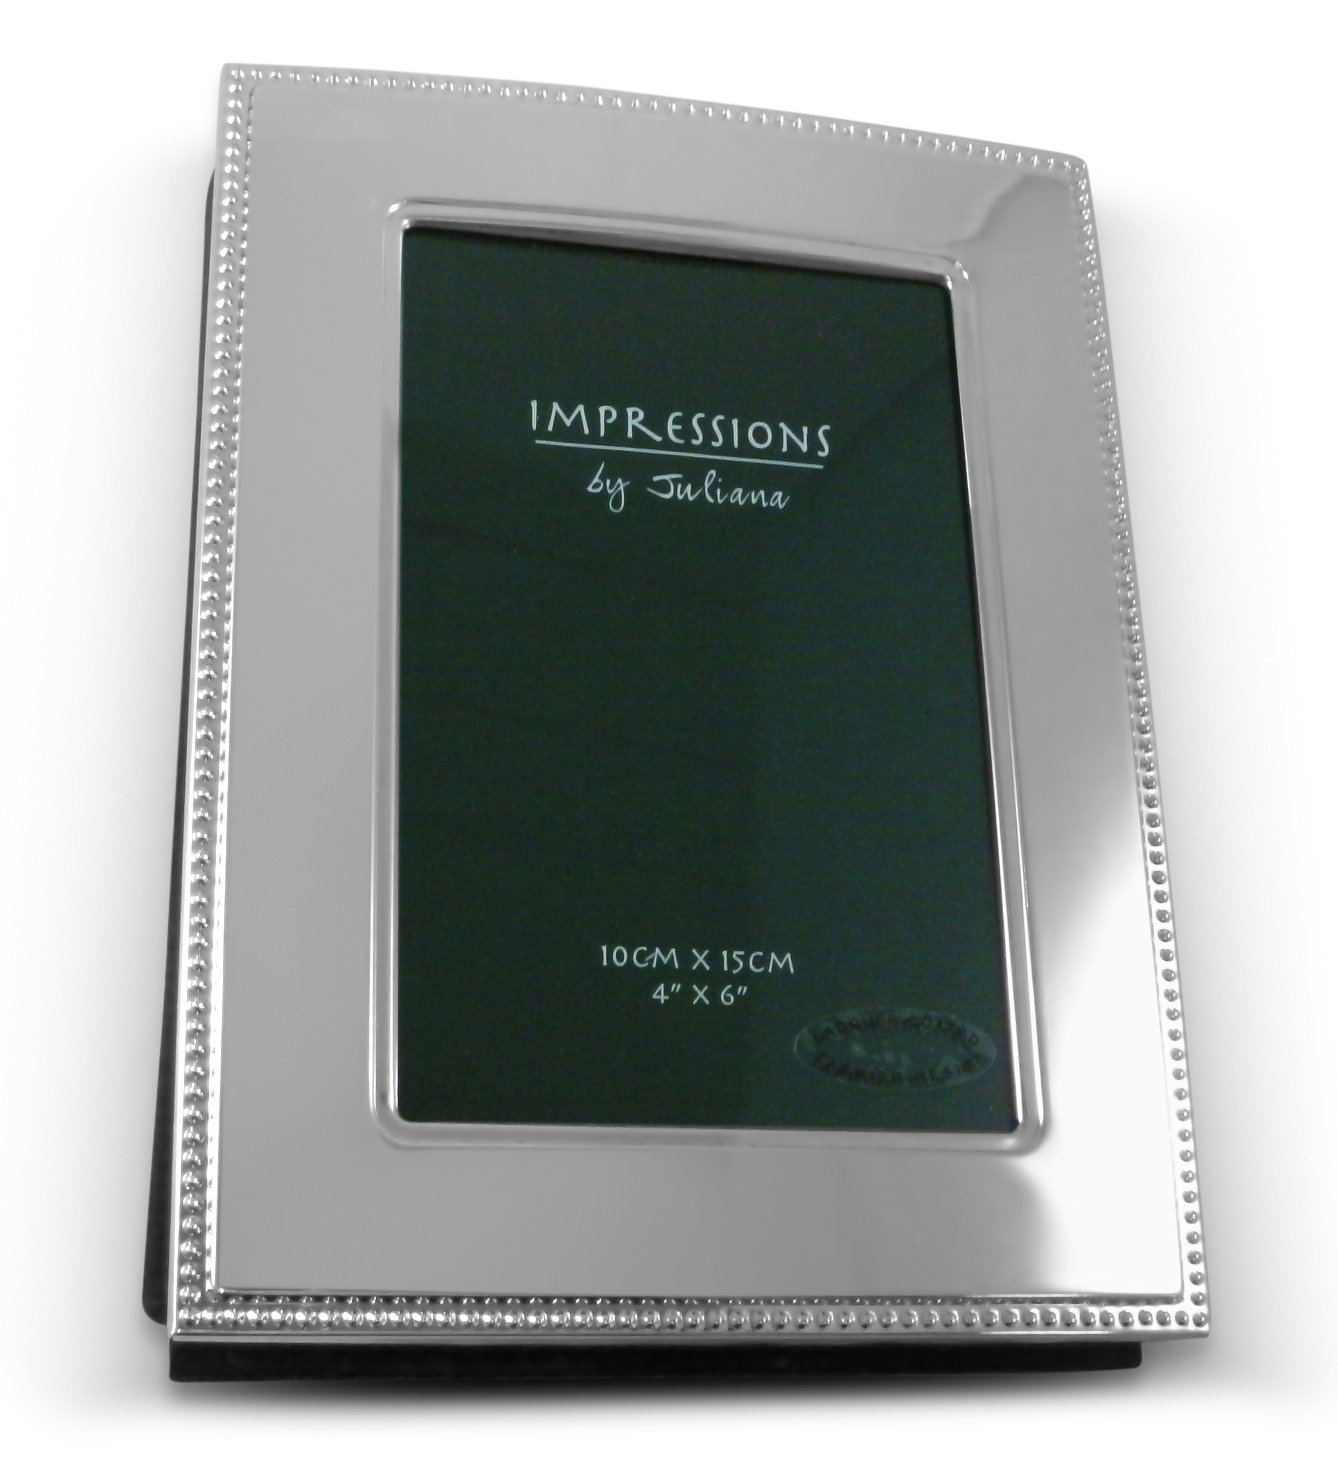 Luxury Engraved Gifts UK Custom / Personalised Photo Album - Holds 80 Pictures 4 X 6 Ref Lr53